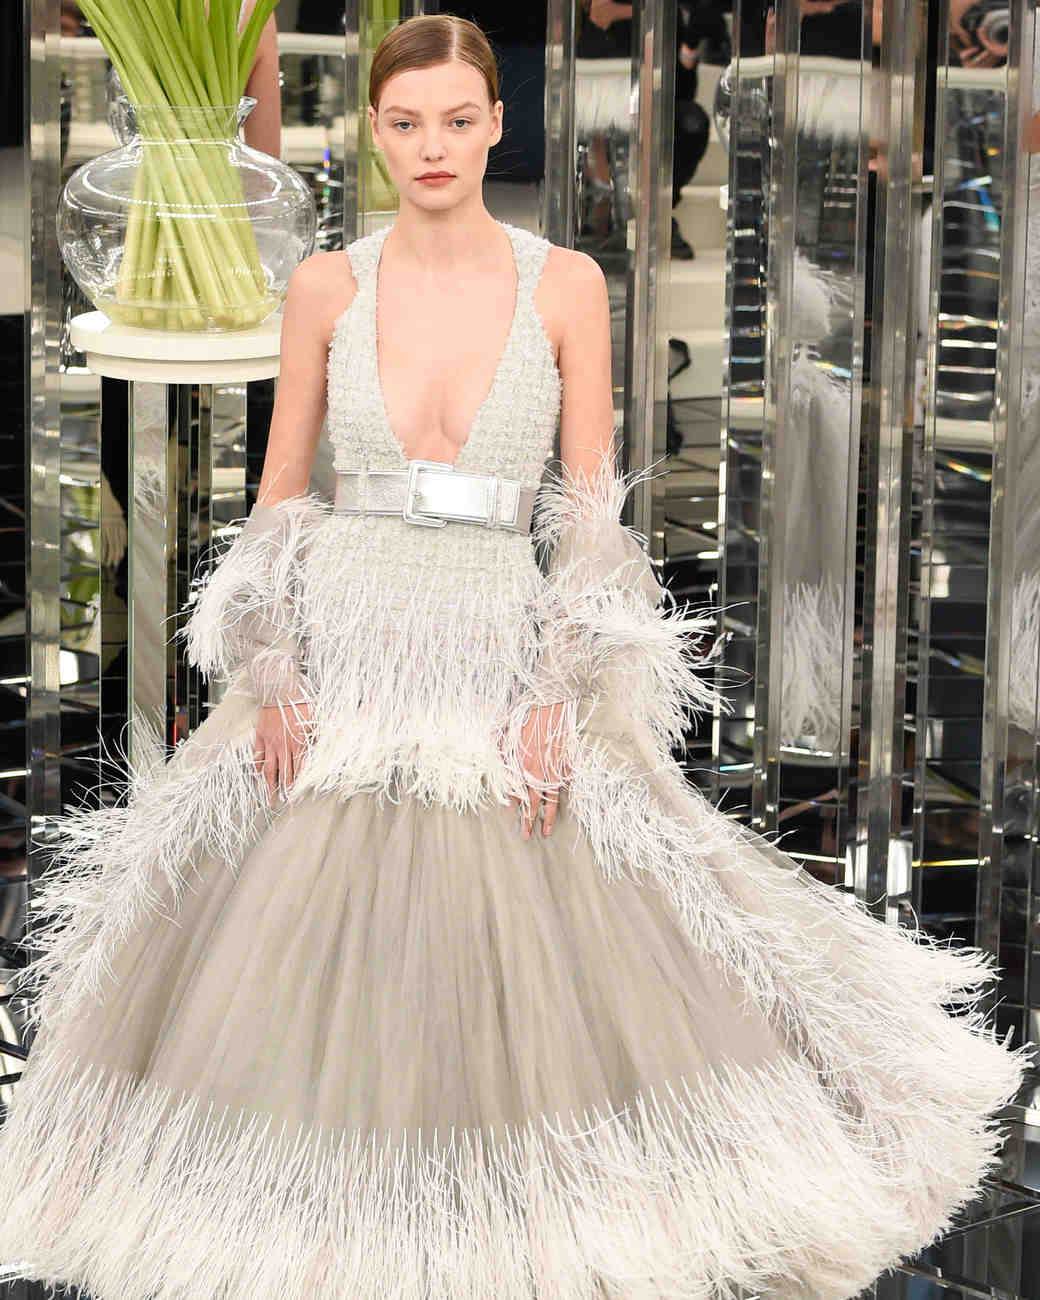 chanel-couture-spring-2017-0117-002_vert.jpg